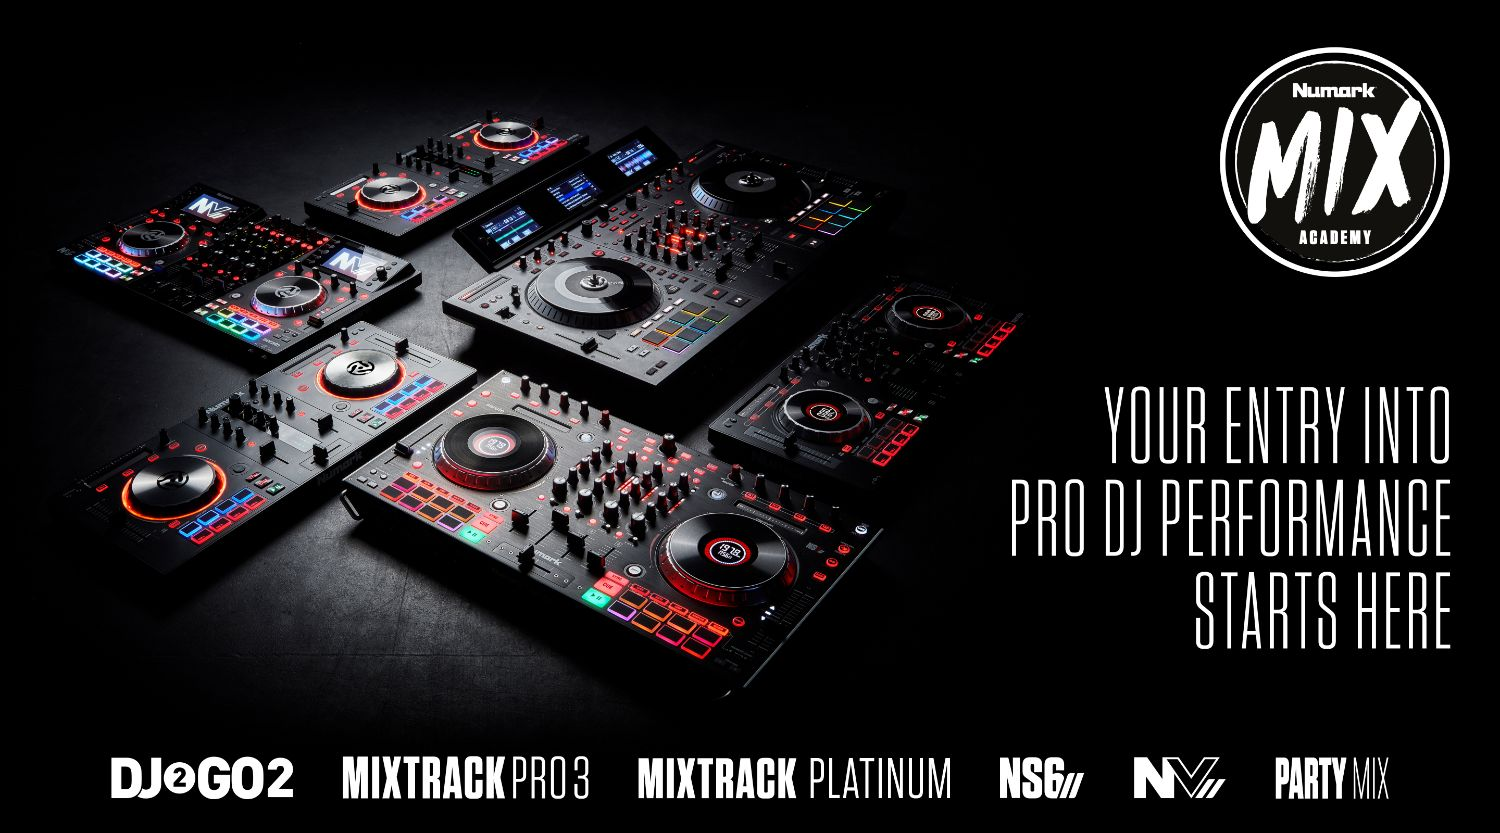 Numark Mix Academy featuring Mixtrack Pro Fx, Mixtrack Platinum FX, PartyMix, DJ2GO2 Touch, NS6 MK2, and NV MK2